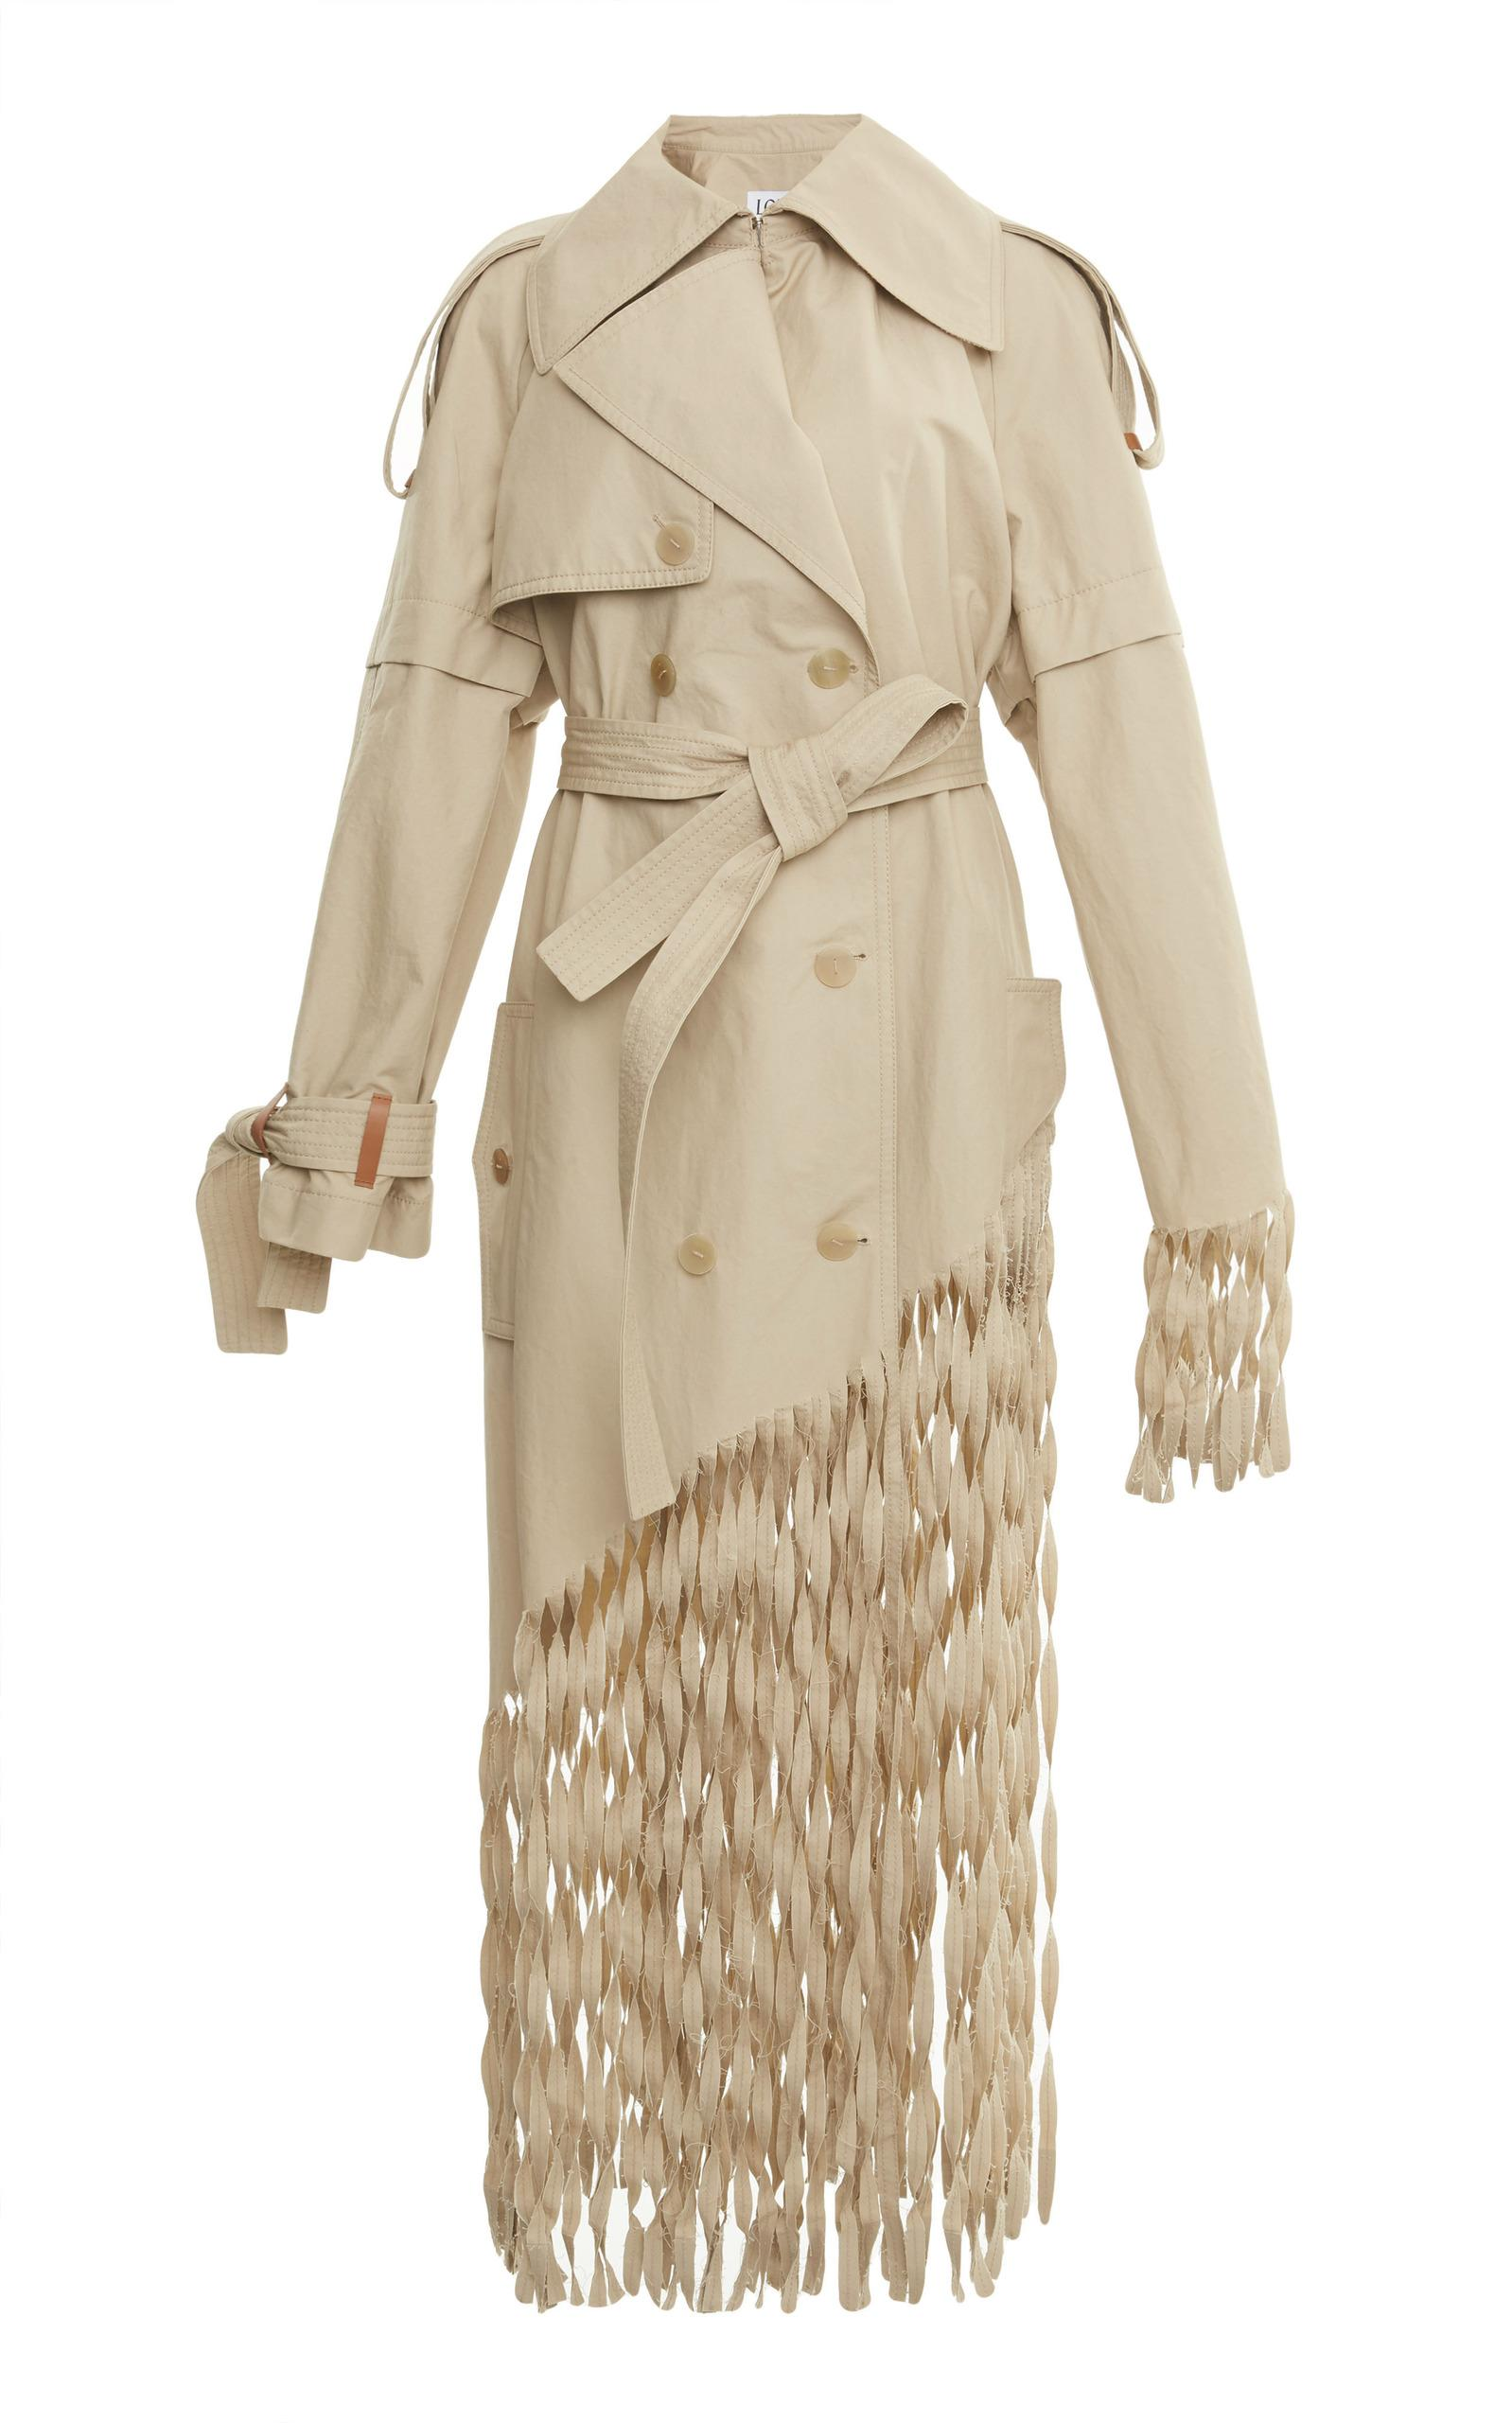 Loewe Distressed Fringed Cotton Trench Coat In Beige